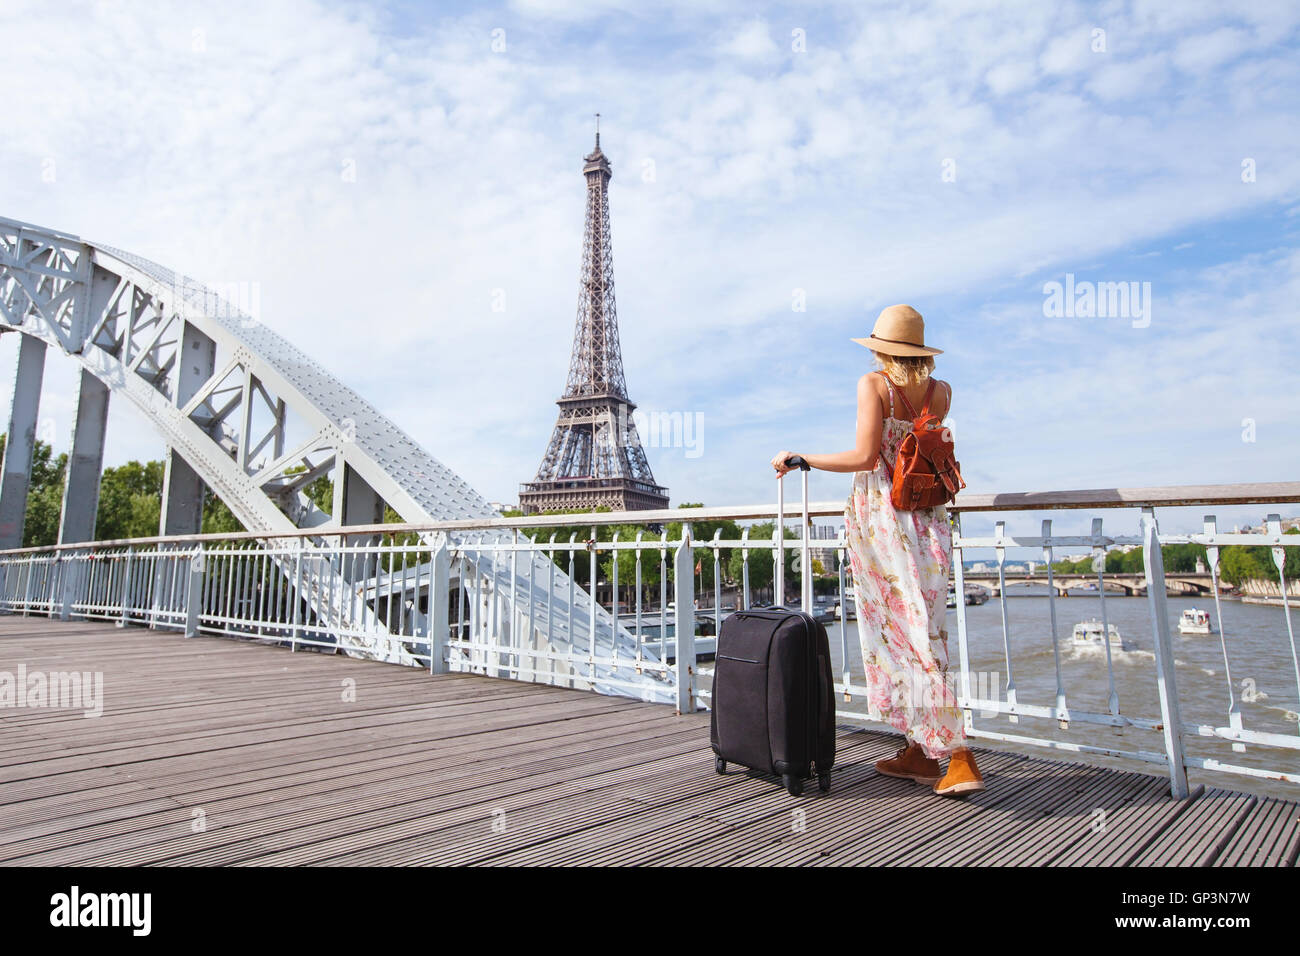 travel to Paris, Europe tour, woman with suitcase near Eiffel Tower, France - Stock Image